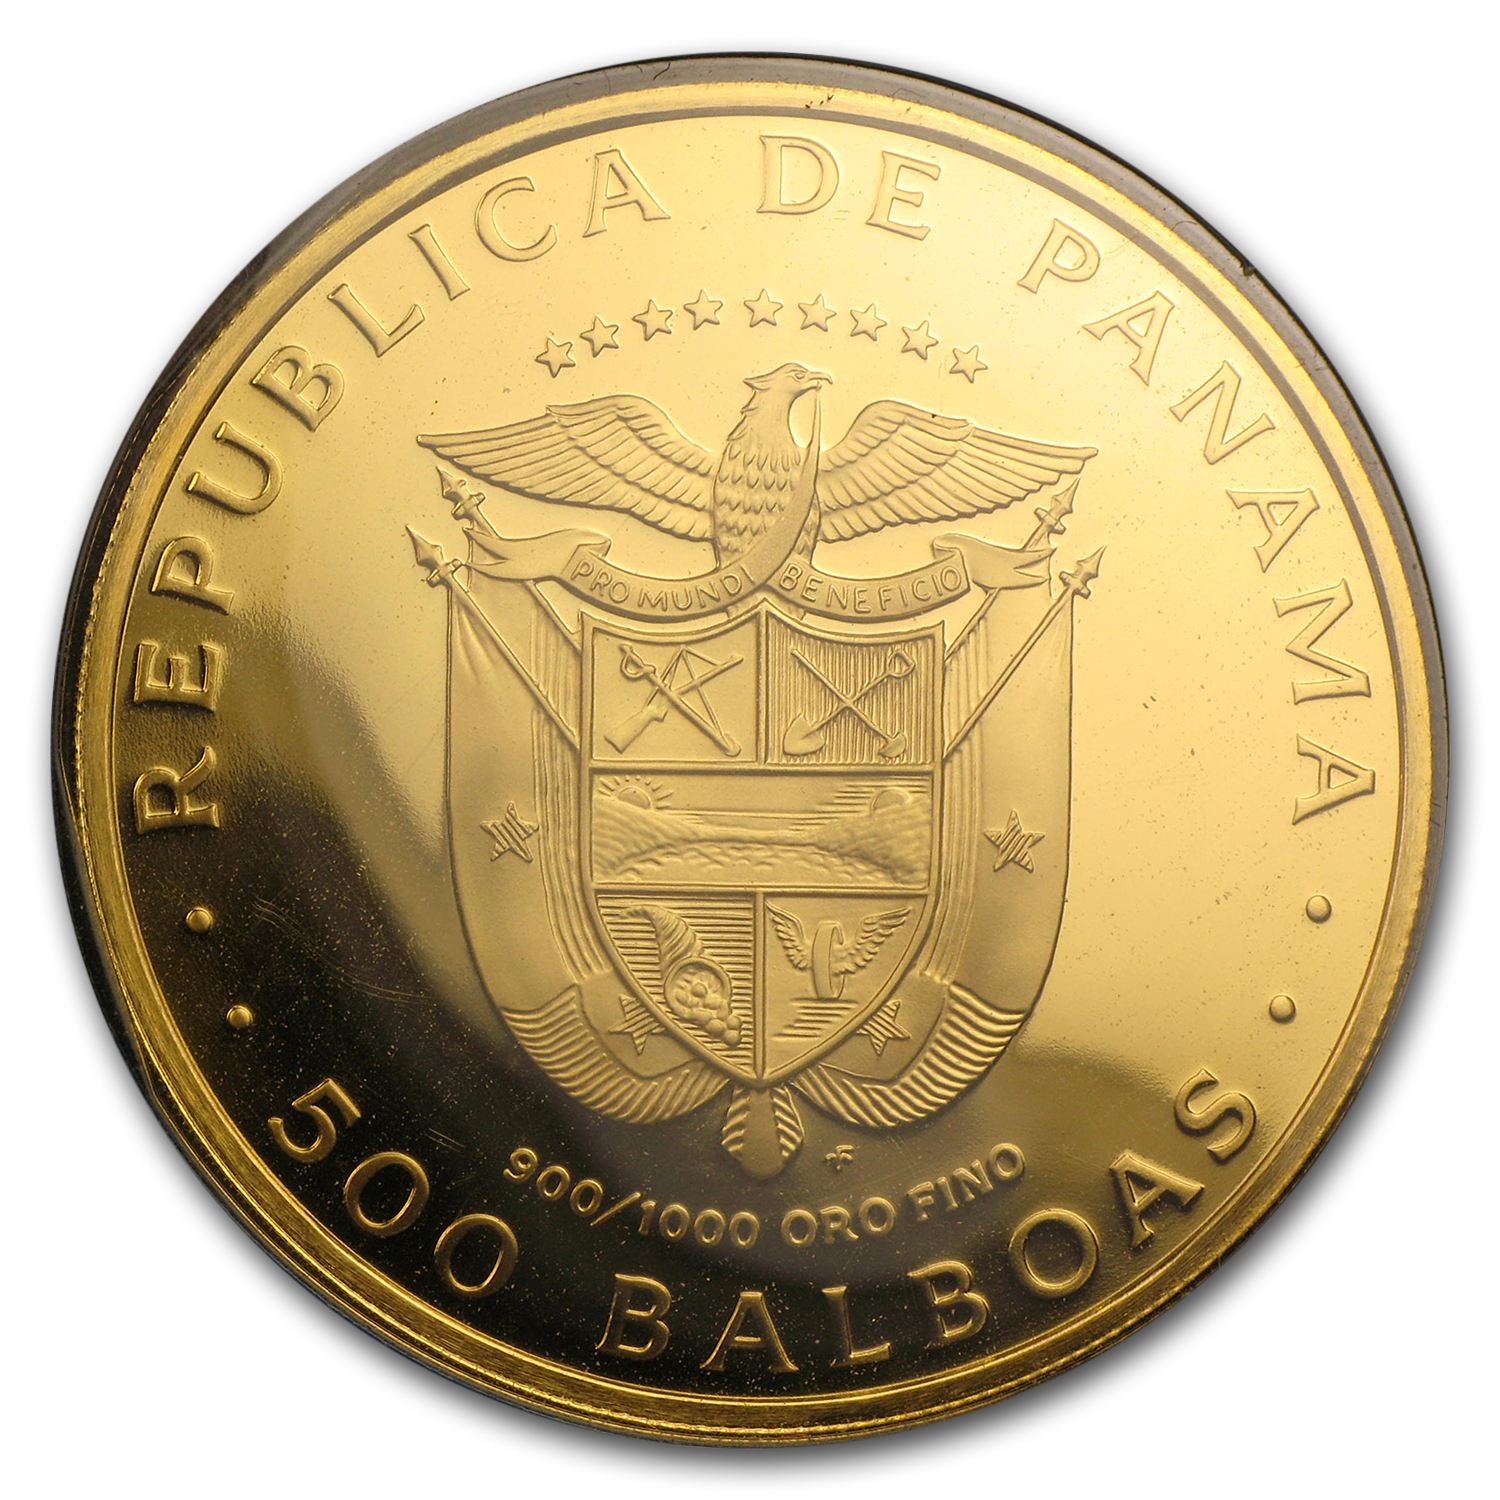 Panama 1975 500 Balboa Gold Proof